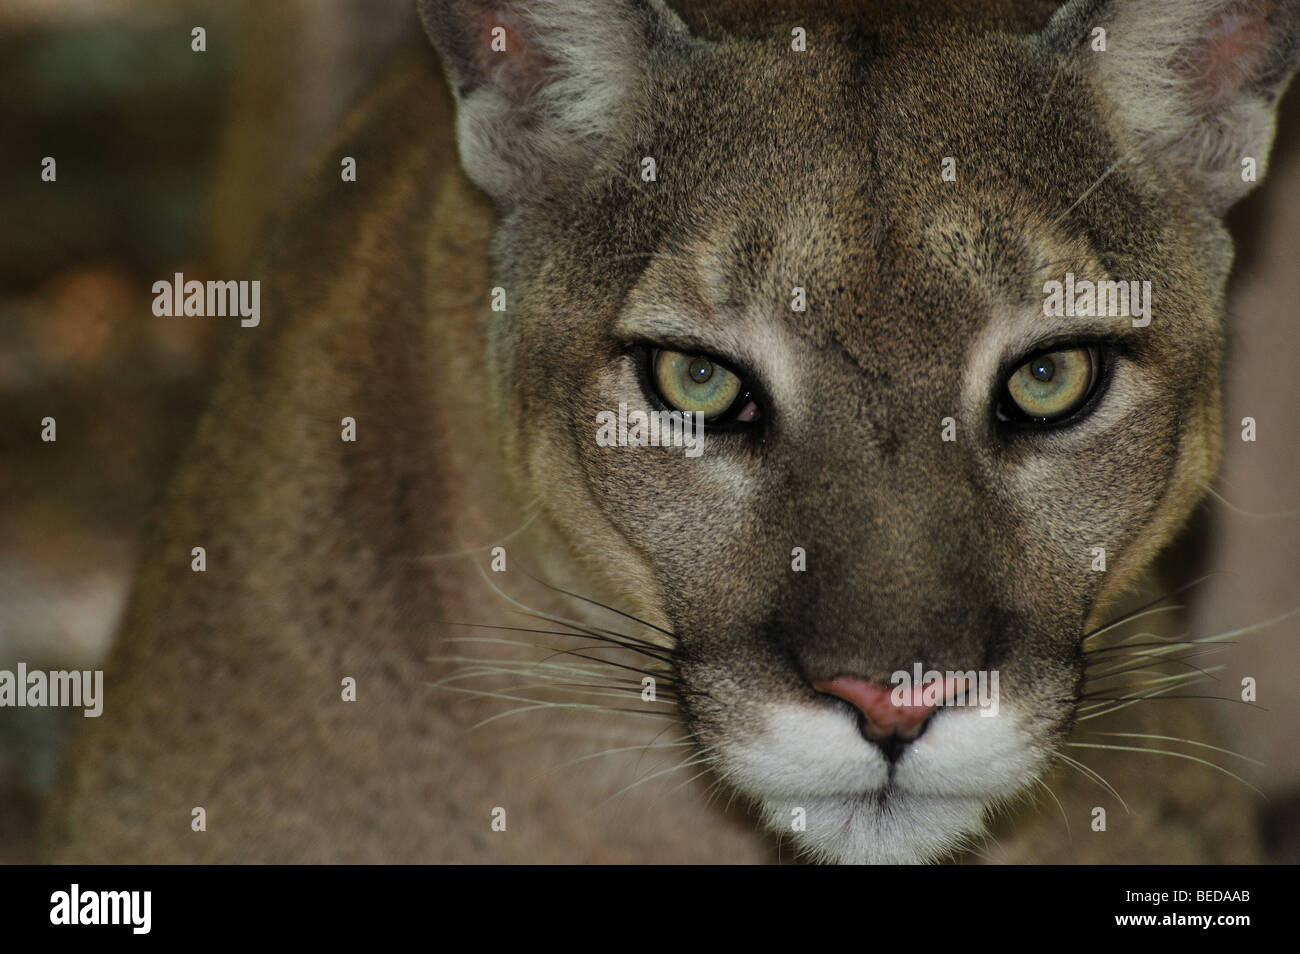 Florida panther, Puma concolor coryi, Floride, captive Photo Stock